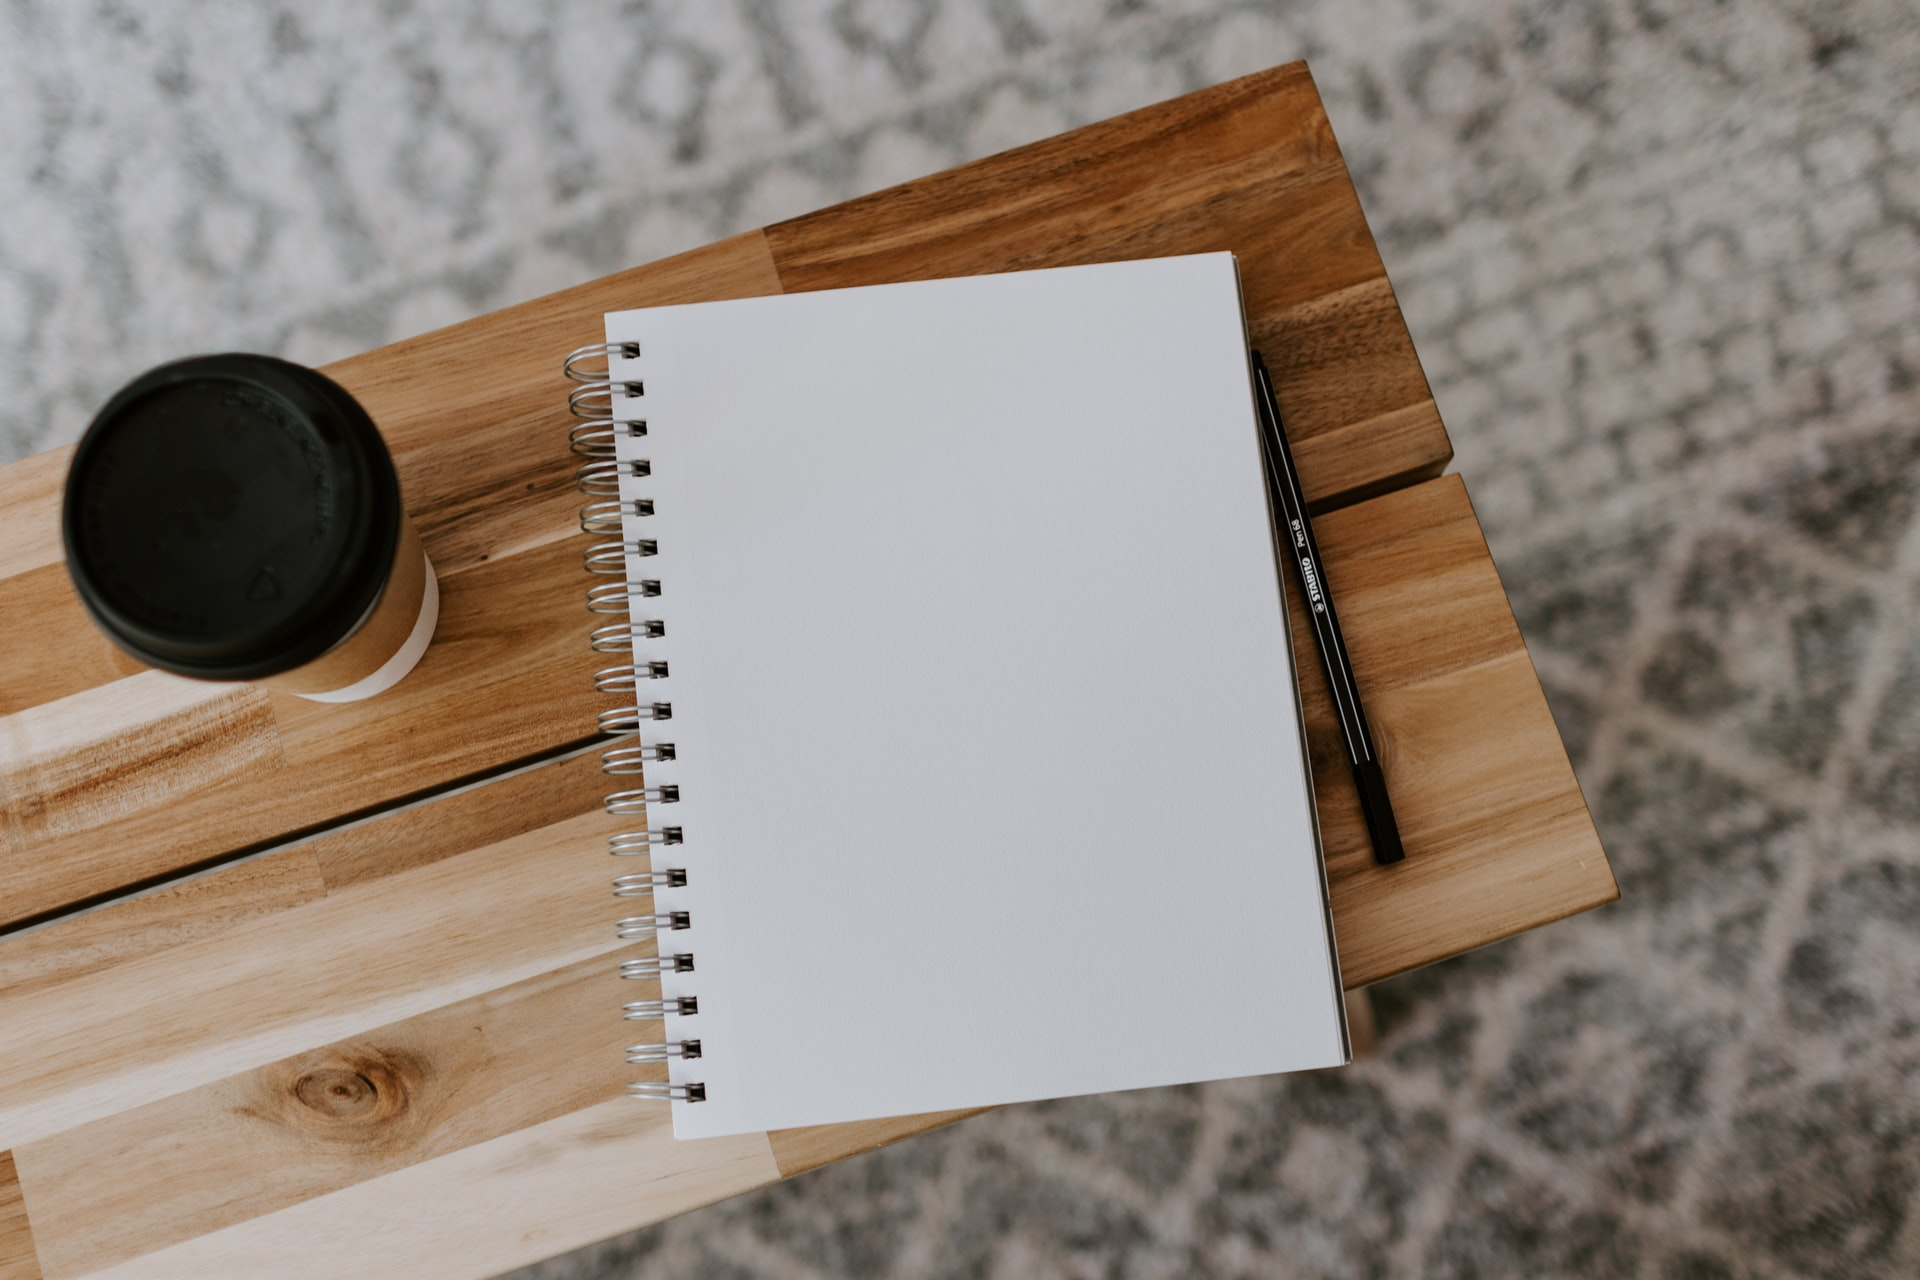 Notebook and coffee on desk